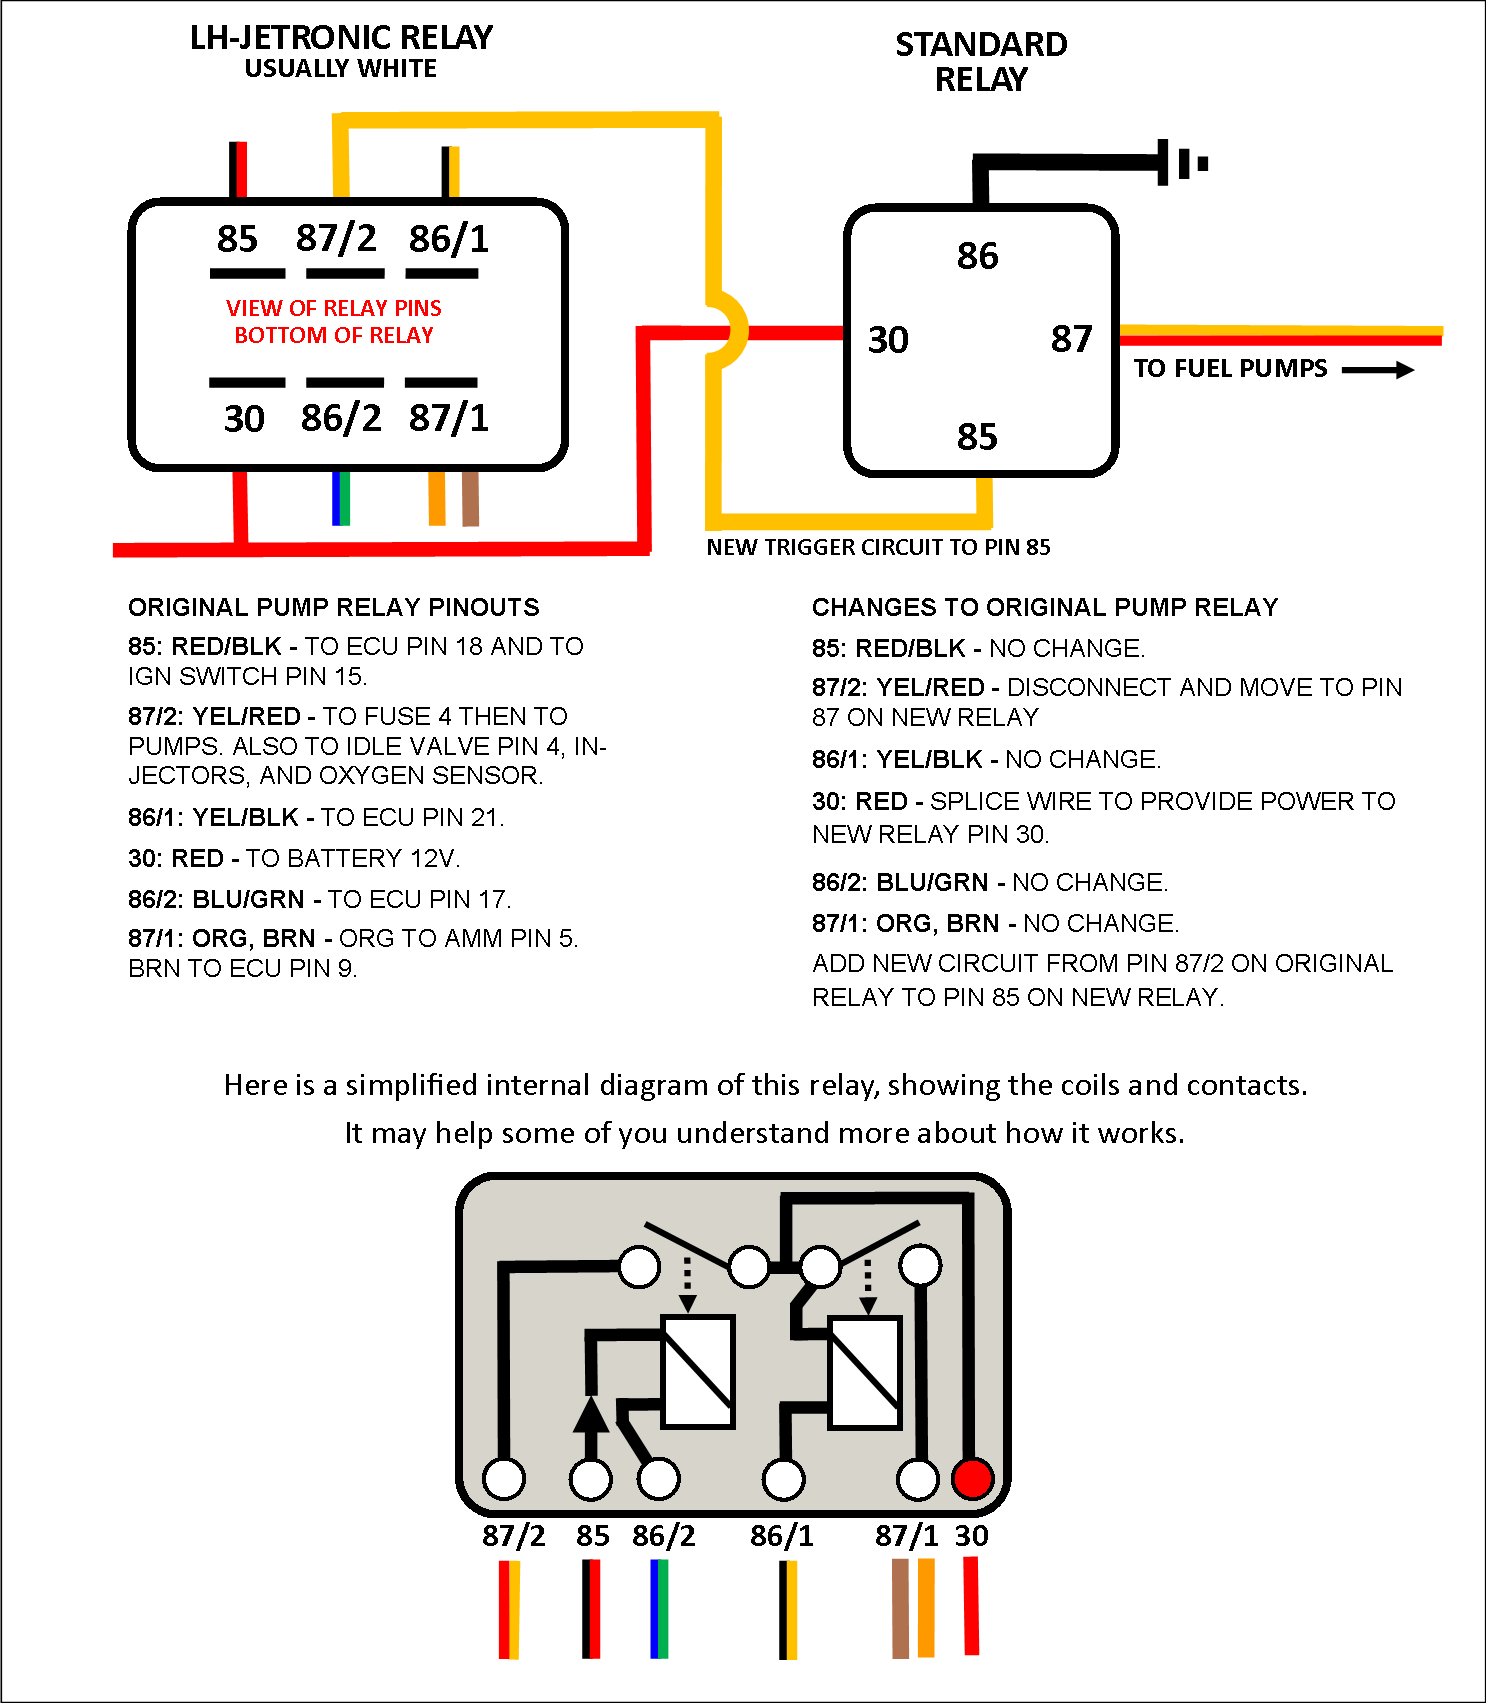 [DVZP_7254]   Radio Wiring Diagram For A 1993 Volvo 850 1998 Camry Fuse Box Diagram -  seluma.kucing-garong-8.sardaracomunitaospitale.it | 1992 Volvo 240 Radio Wiring |  | Wiring Diagram and Schematics